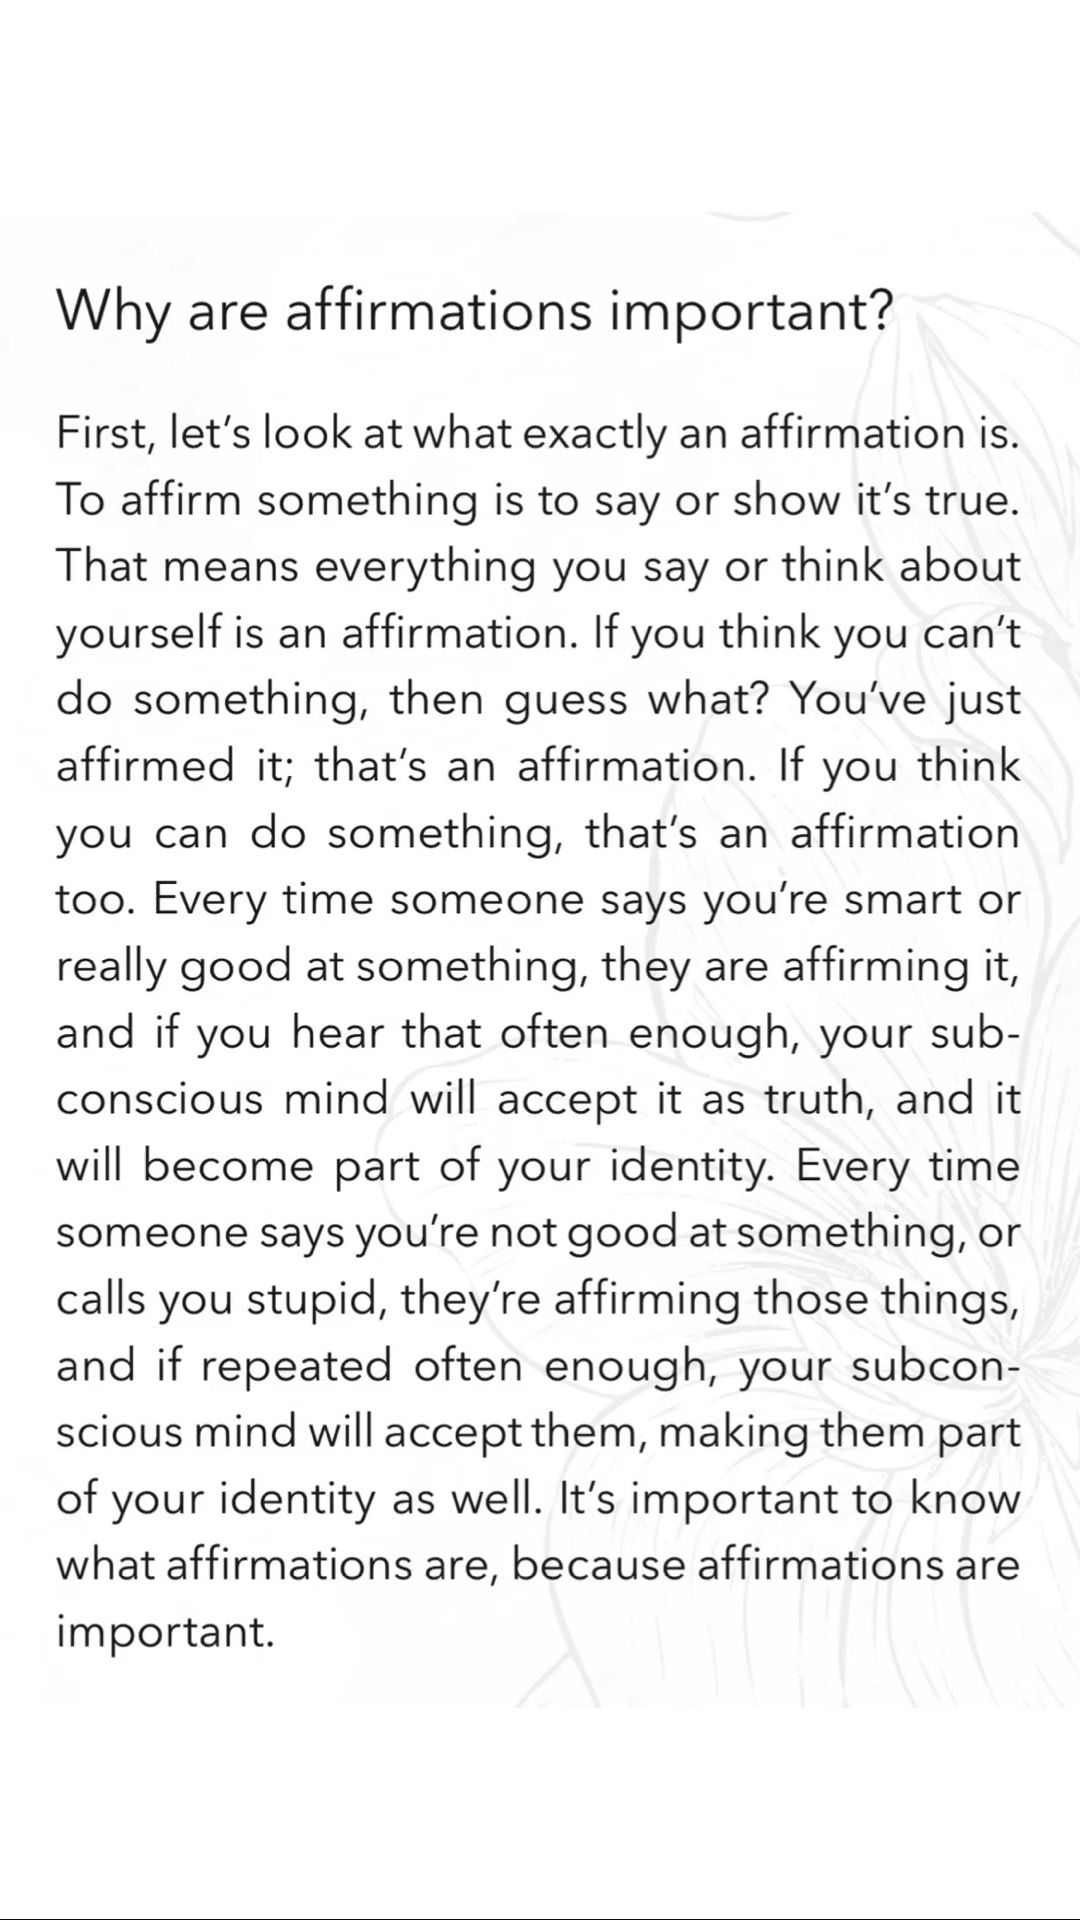 Why are affirmations important?